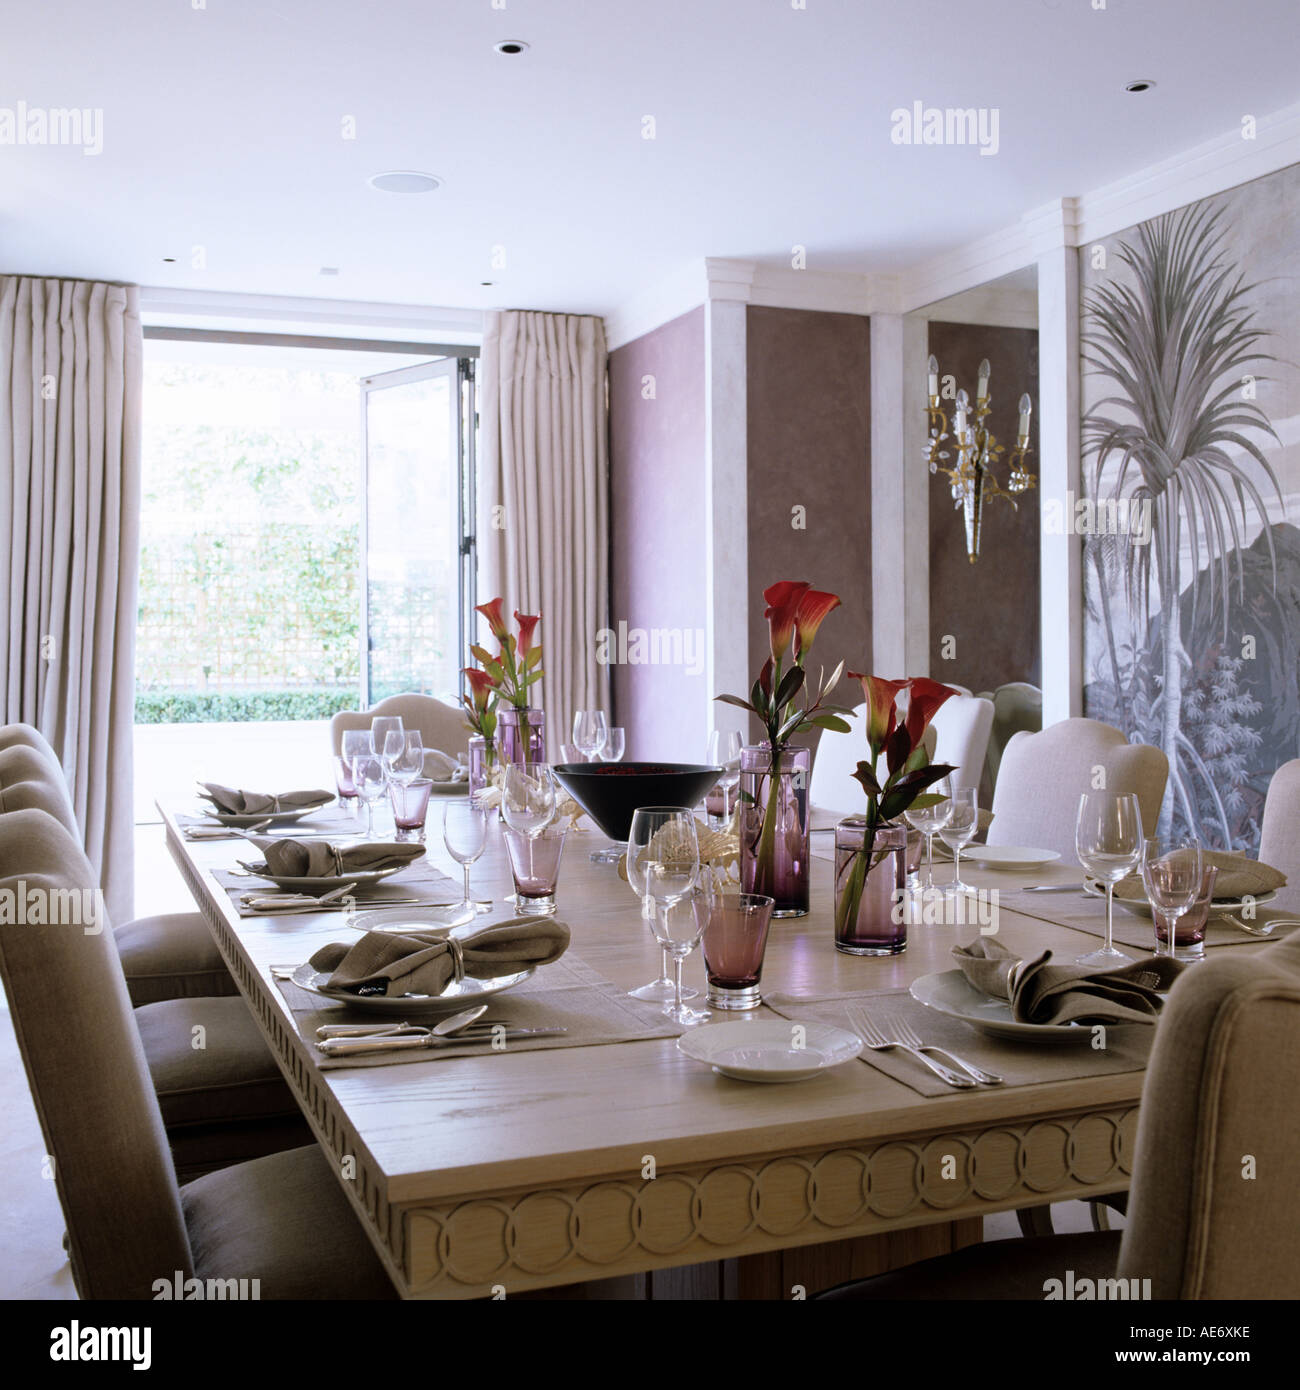 A London Dining Room With Set Table And Panoramic Wallpaper Interior Design By Emily Todhunter